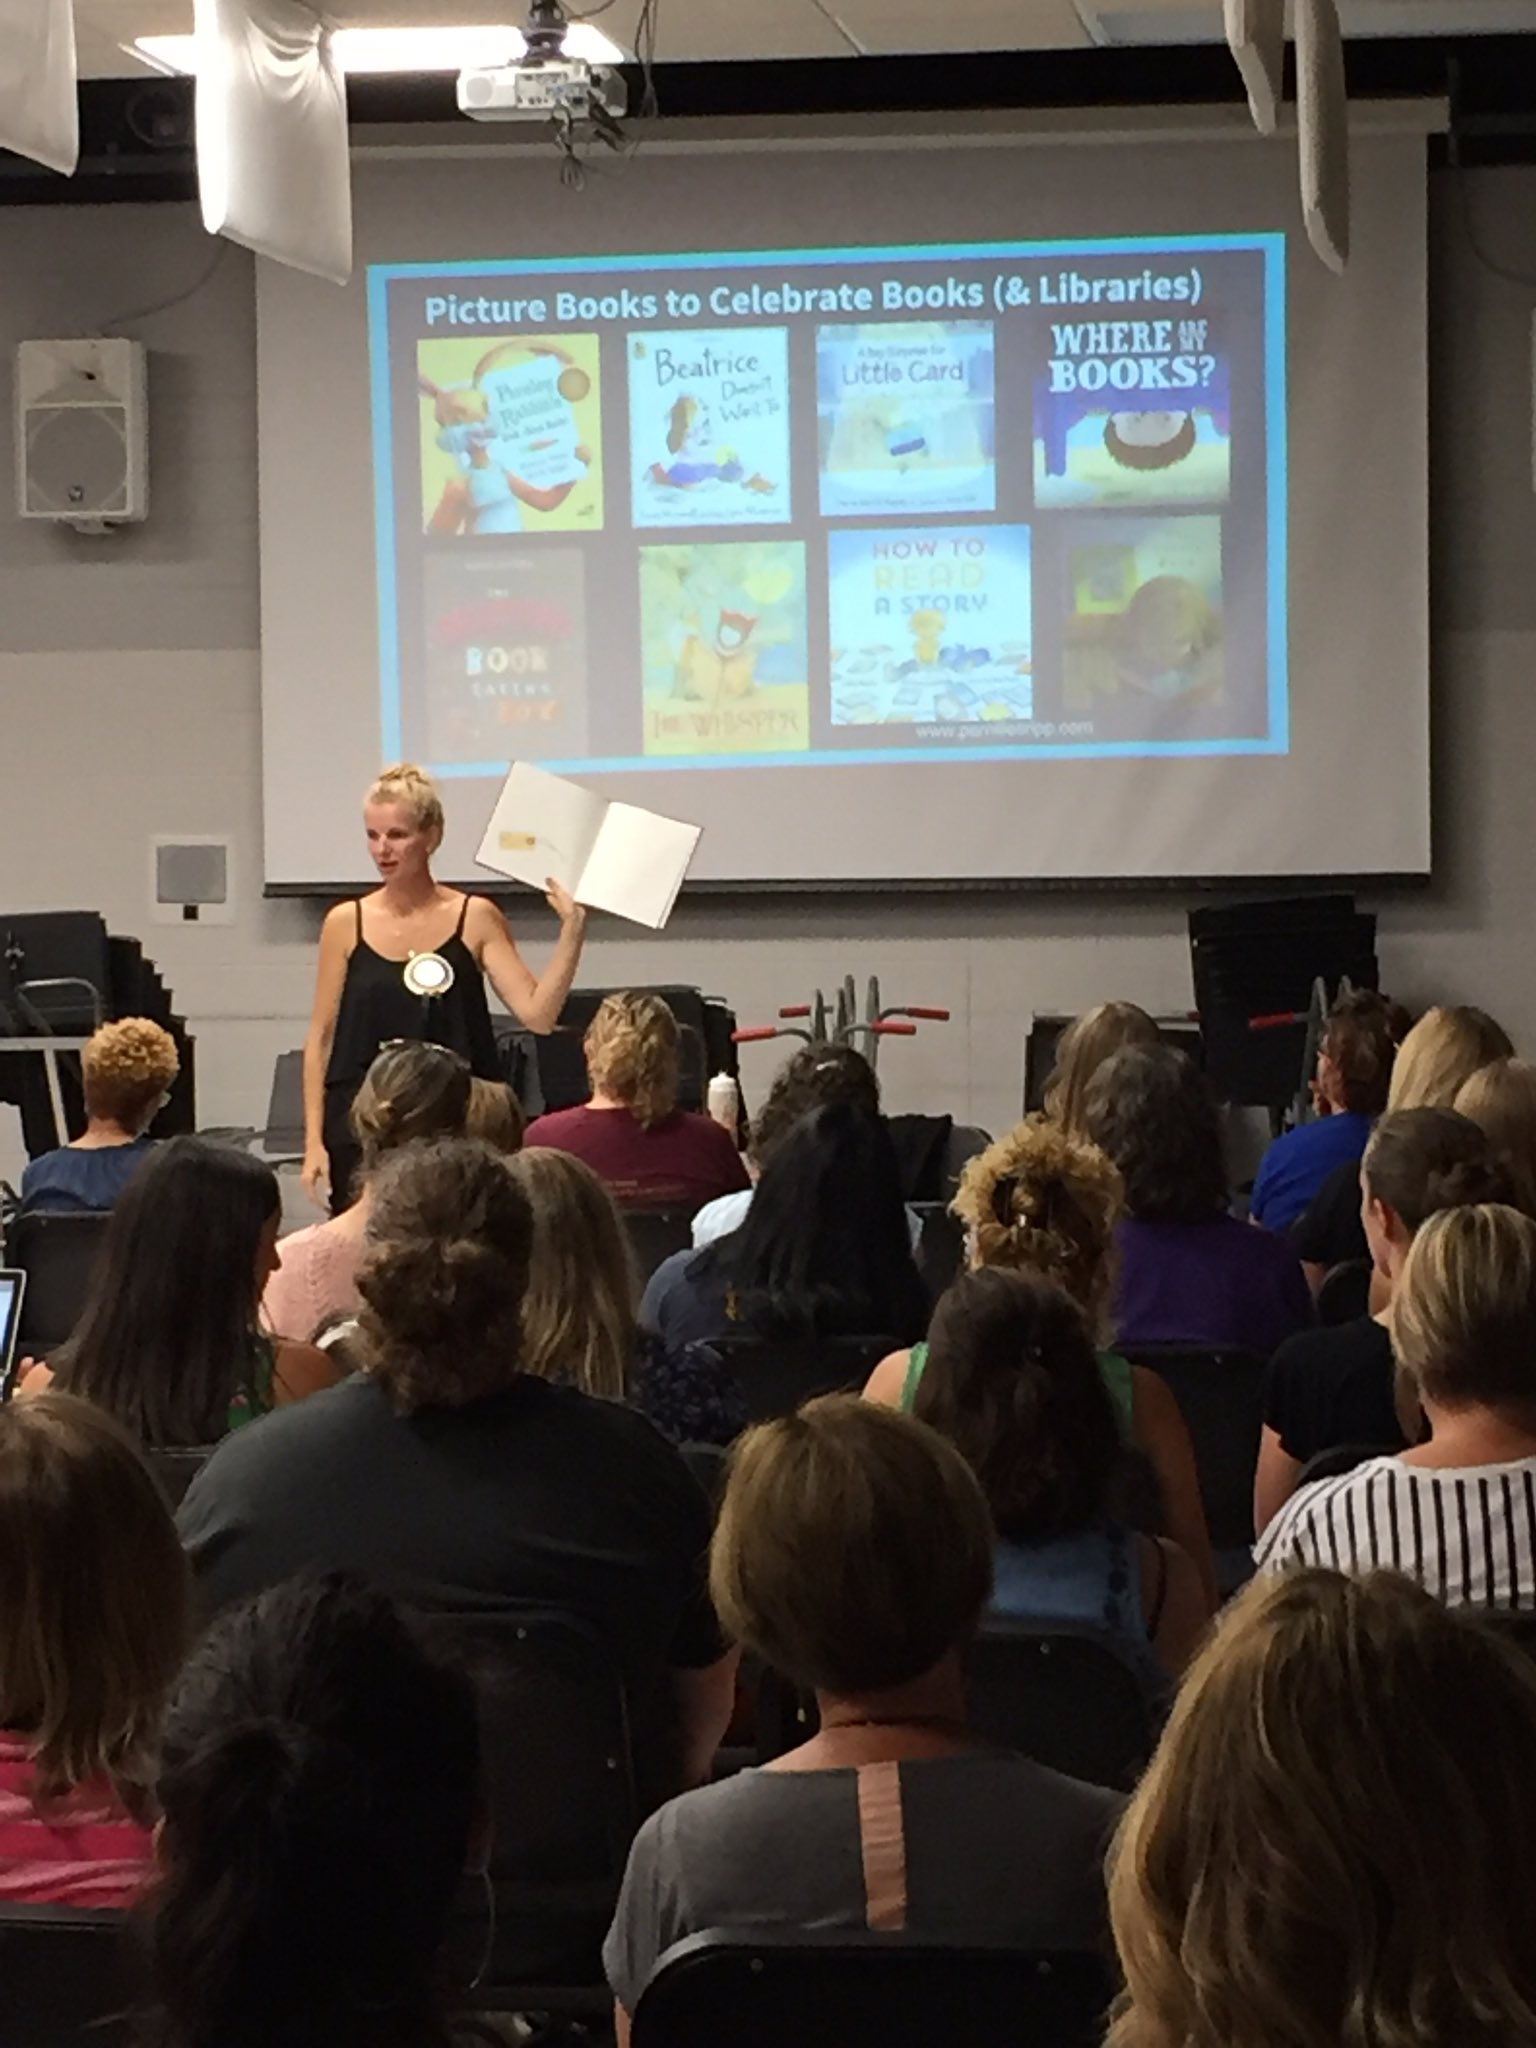 """Our common assessment is through picture books, not a whole class novel."" @pernilleripp #nErDcampMI https://t.co/DzNJE51Ypl"